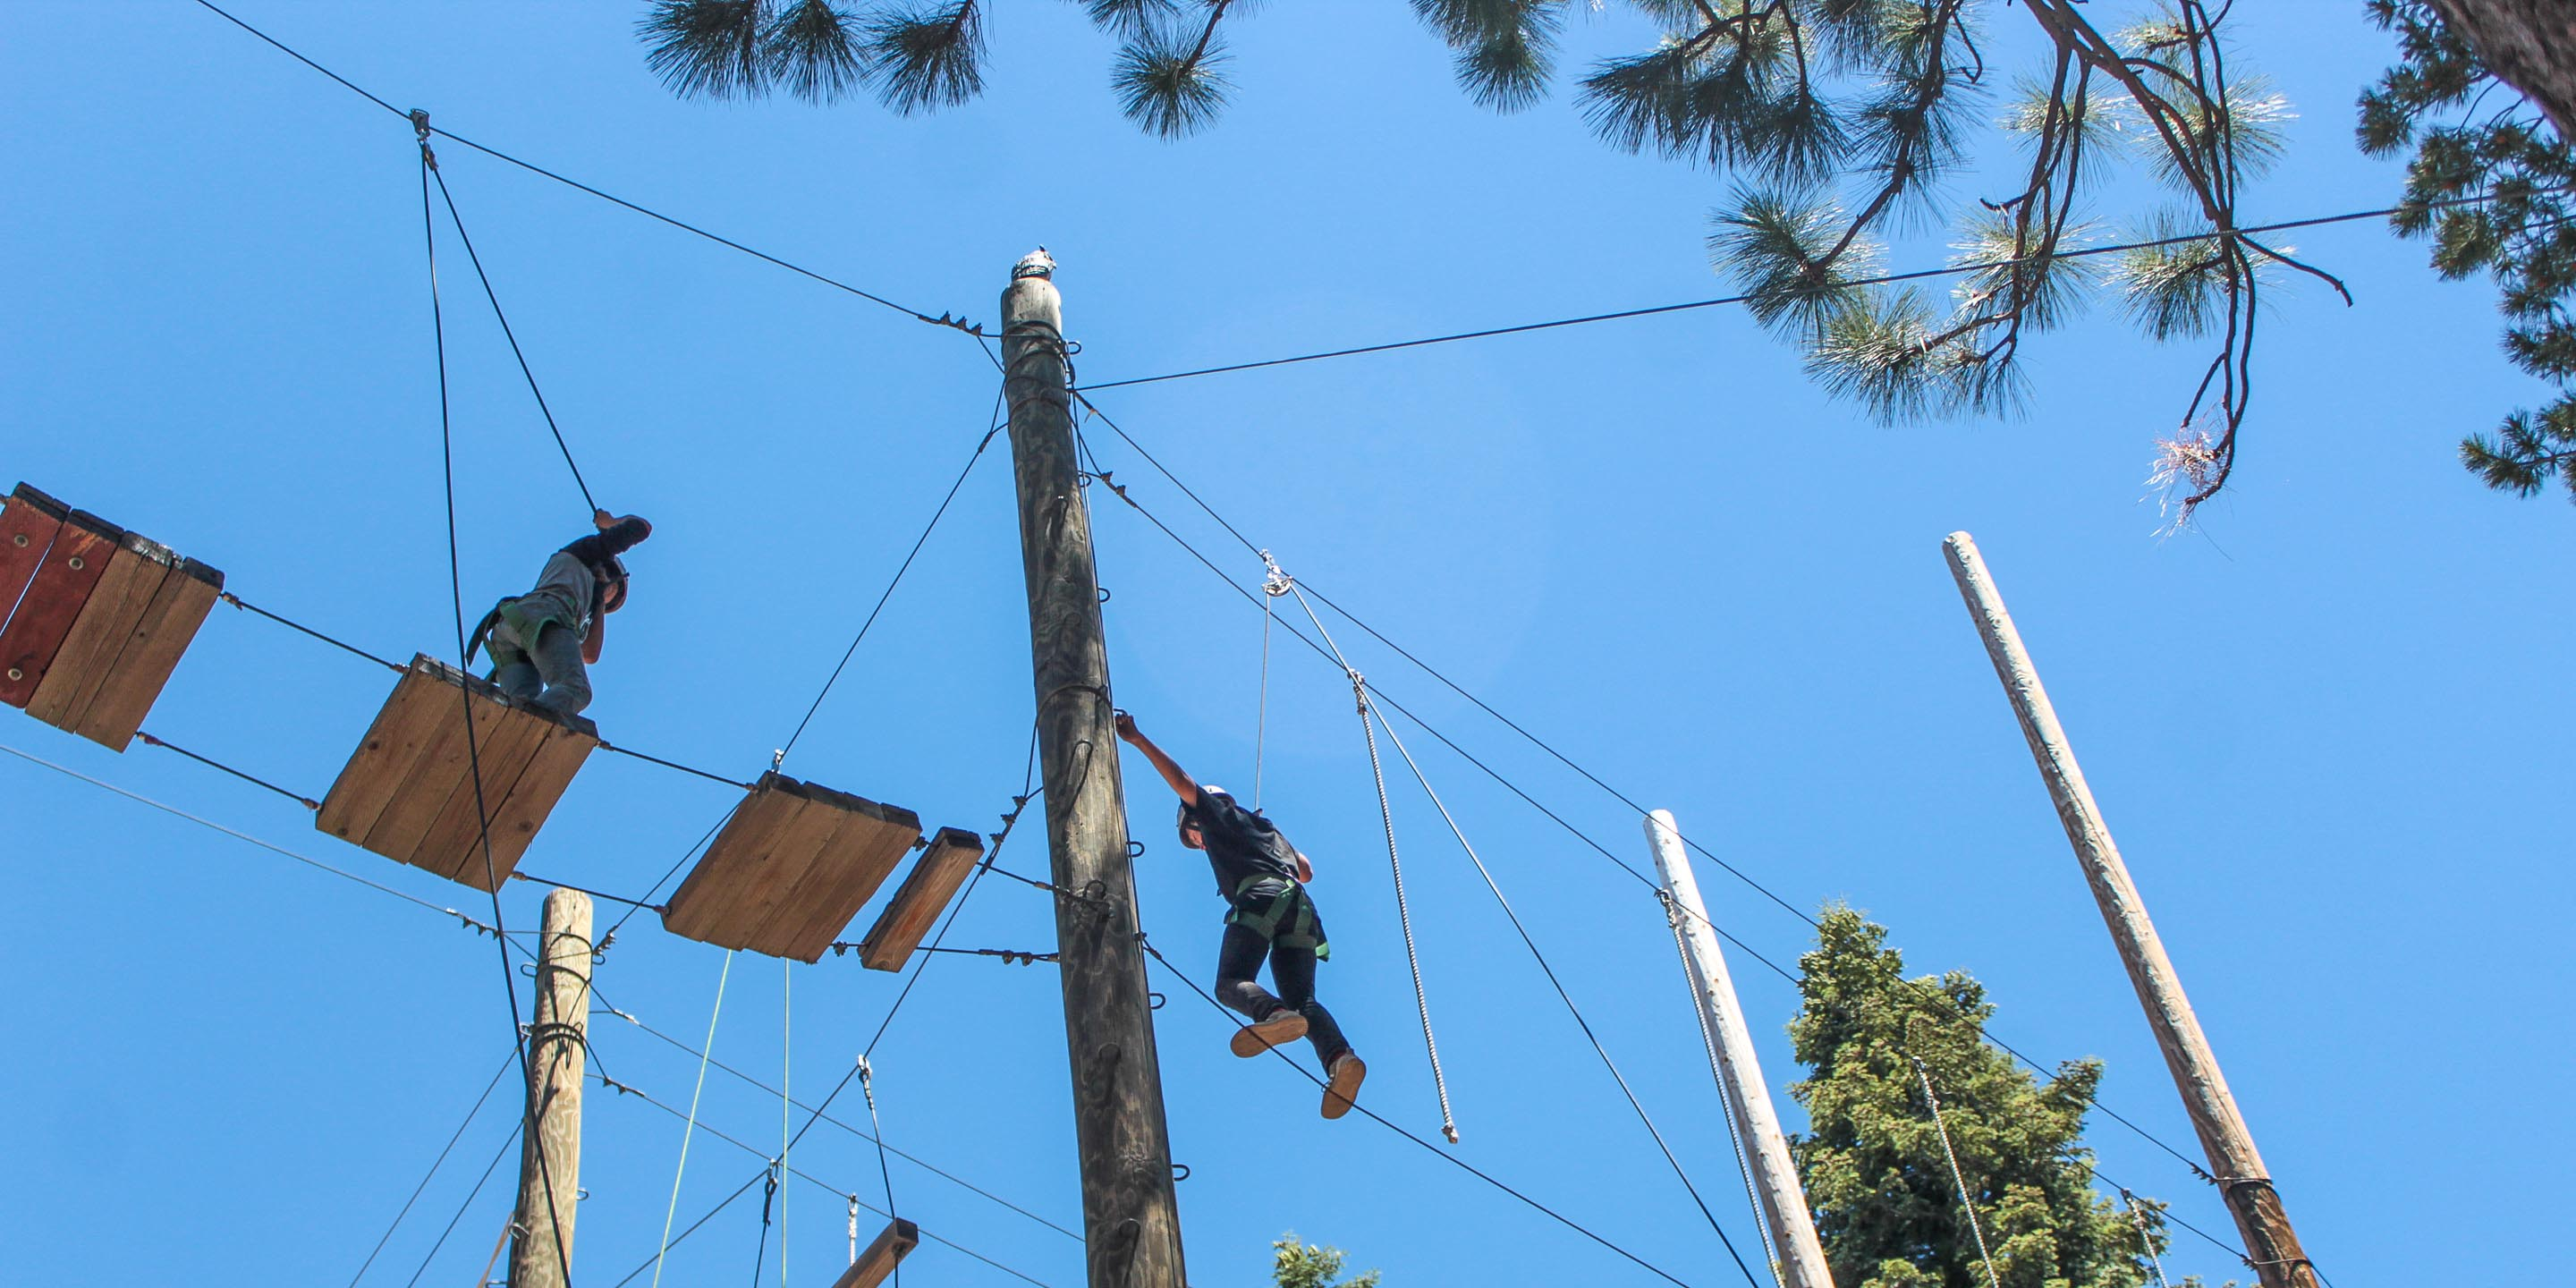 Campers on high ropes course